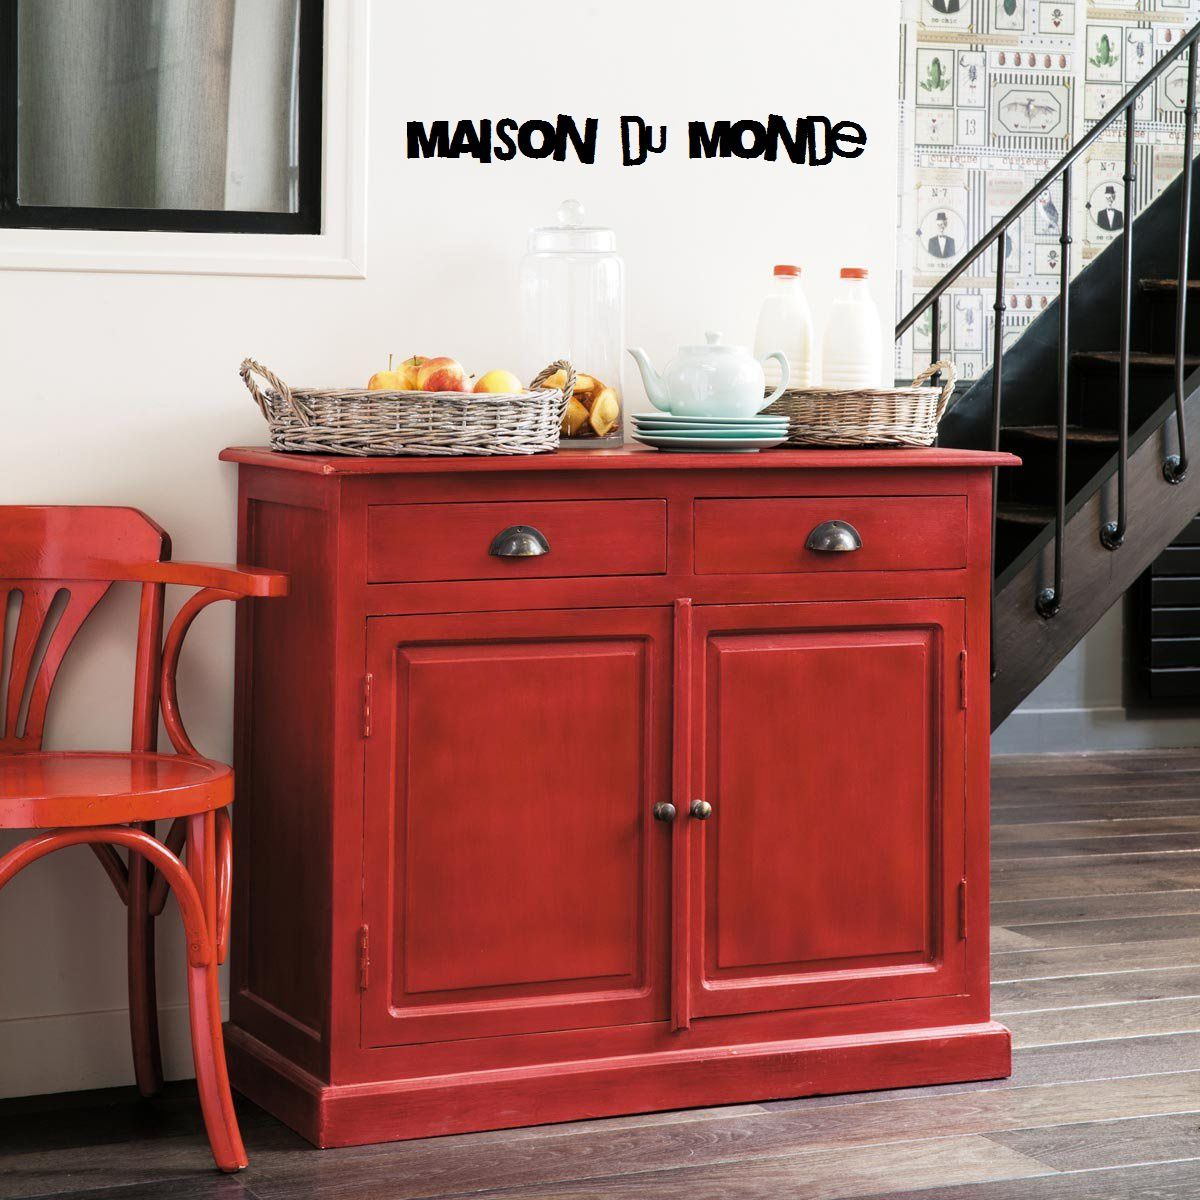 buffet rouge gascogne maison du monde atelier meuble indus. Black Bedroom Furniture Sets. Home Design Ideas